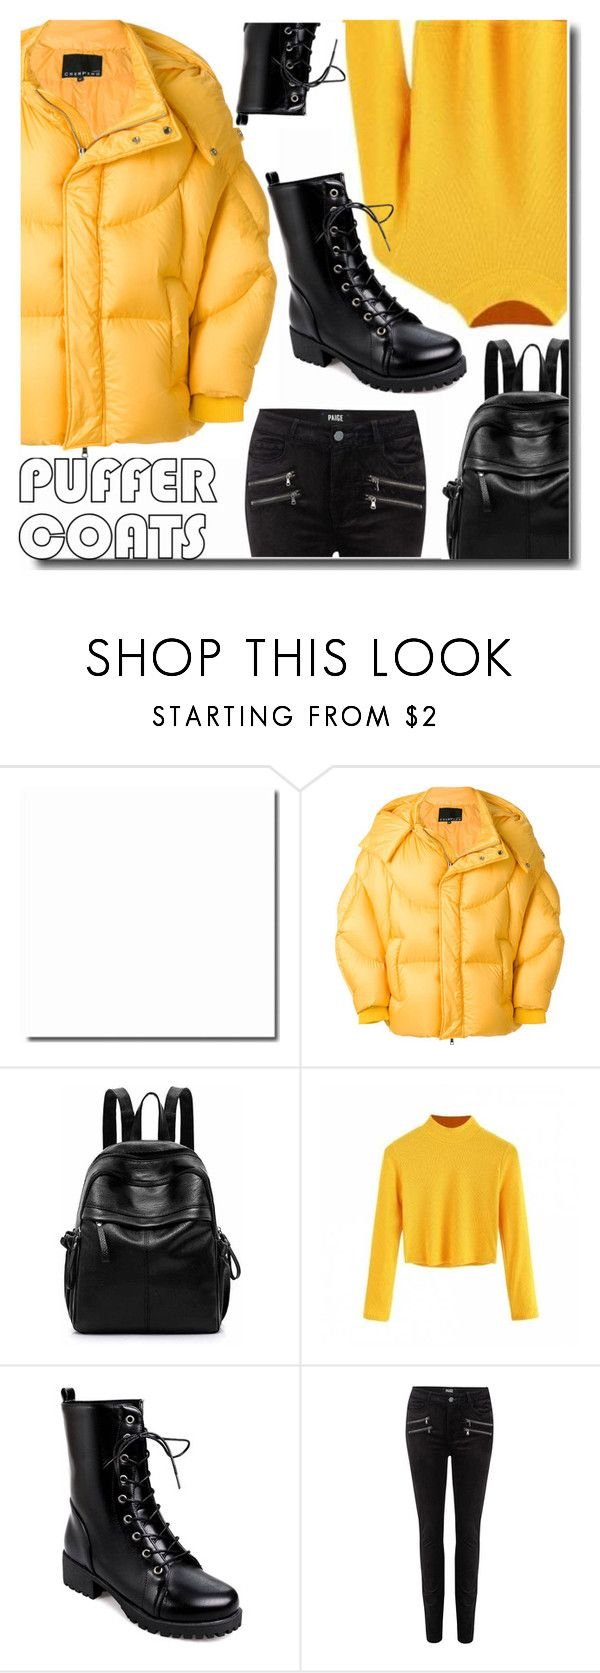 """""""Puffer Coats"""" by soks ❤ liked on Polyvore featuring Chen Peng and Paige Denim"""